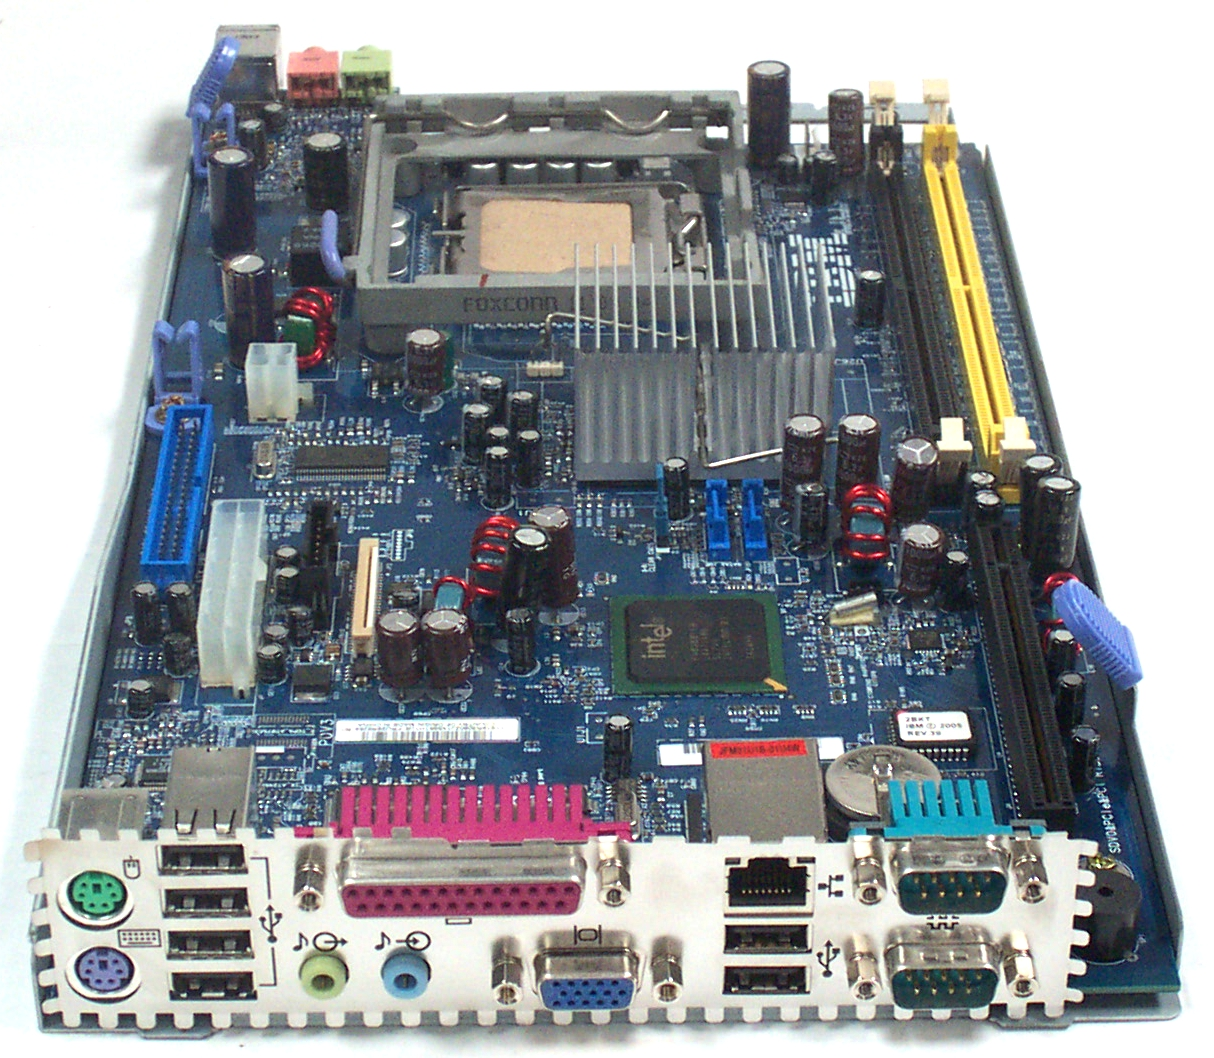 IBM 39J9416 ThinkCentre 9210-29G Socket 775 Motherboard